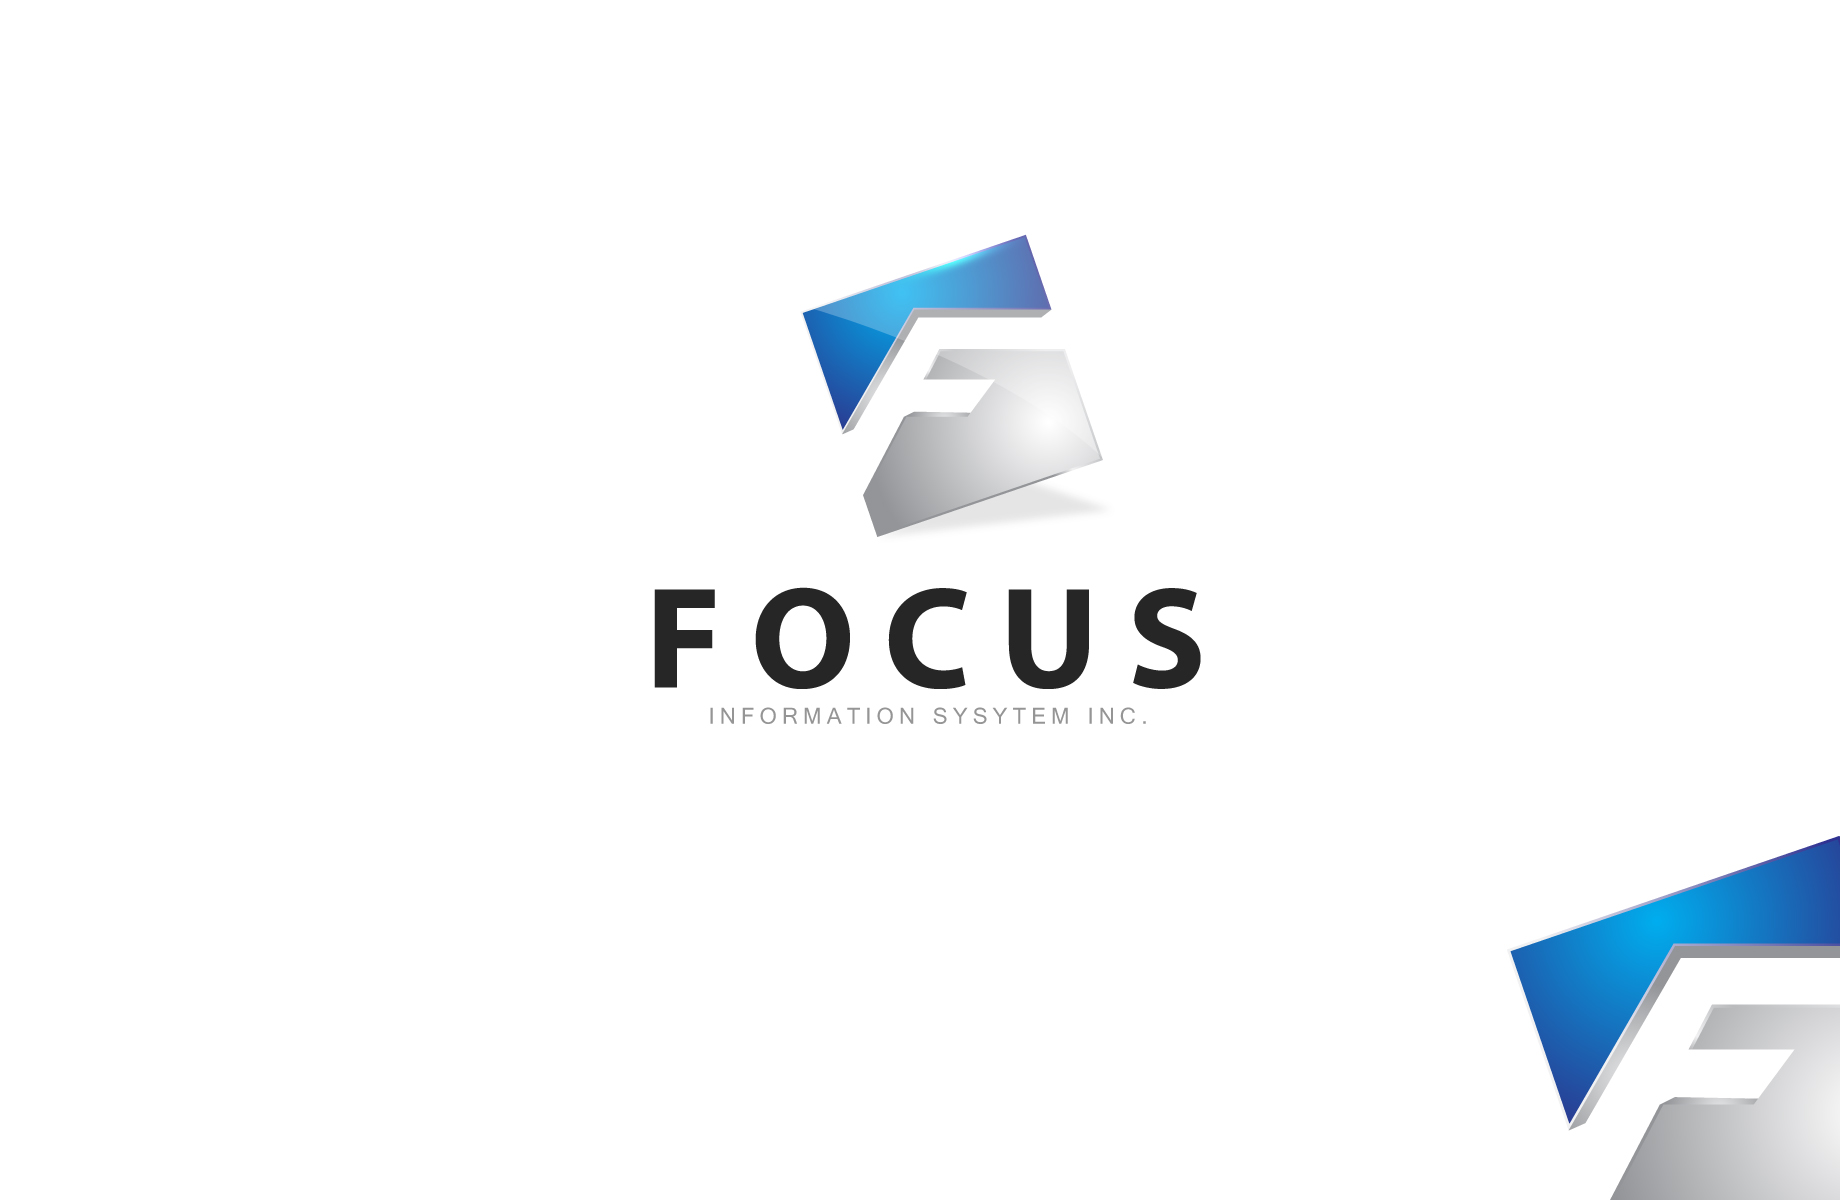 Logo Design by Jan Chua - Entry No. 35 in the Logo Design Contest Artistic Logo Design for Focus Information Systems, Inc..